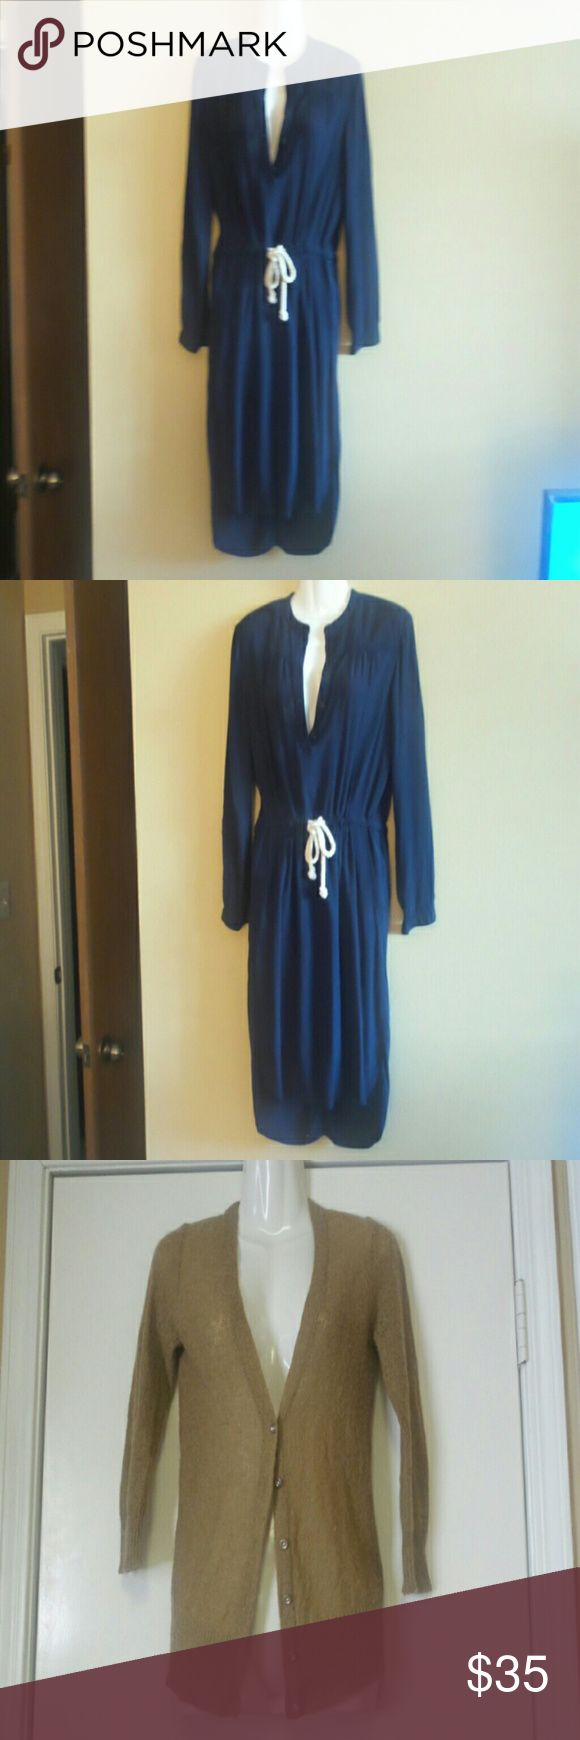 J.Crew bundle dress and cardigan XXS J.Crew bundle dress and cardigan in XXS. Jcrew dress in navy blue in preowned but excellent condition. Used once. It has a mandarin collar with pockets. It is a high to low dress. I'm 5'0 and it is ideal for those ladies between 5'0  and 5'2. Jcrew tan cardigan that is marked XS but is a bit tight so I'm saying it's XXS also.  Made of acrylic and nylon. Both dry clean only. However, I hand washed the dress and it turned out perfectly. J. Crew Factory…